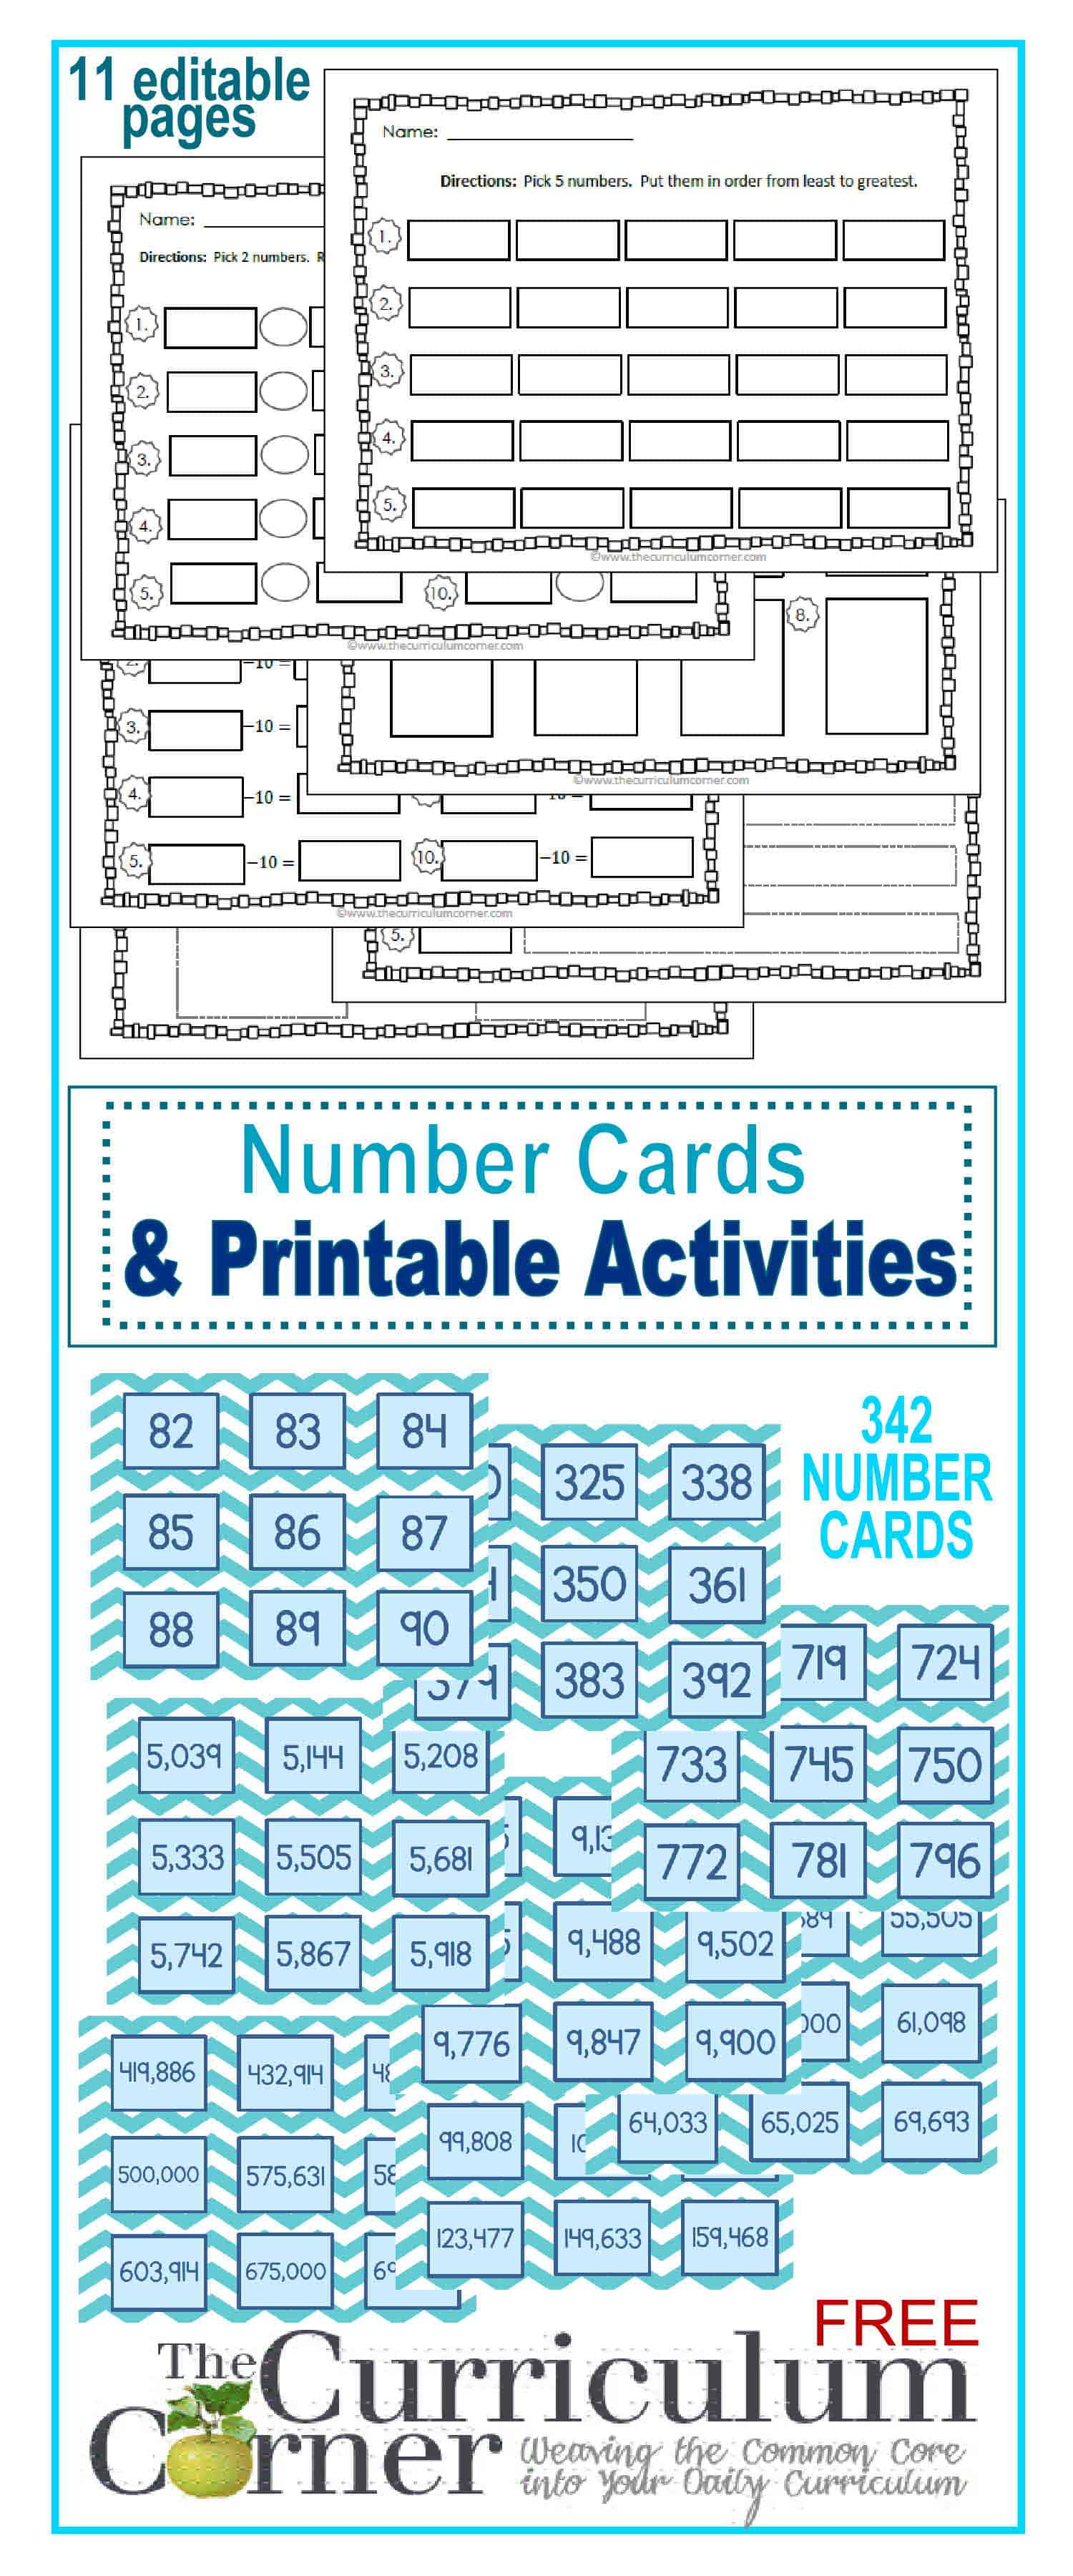 Number Cards & Printable Activities